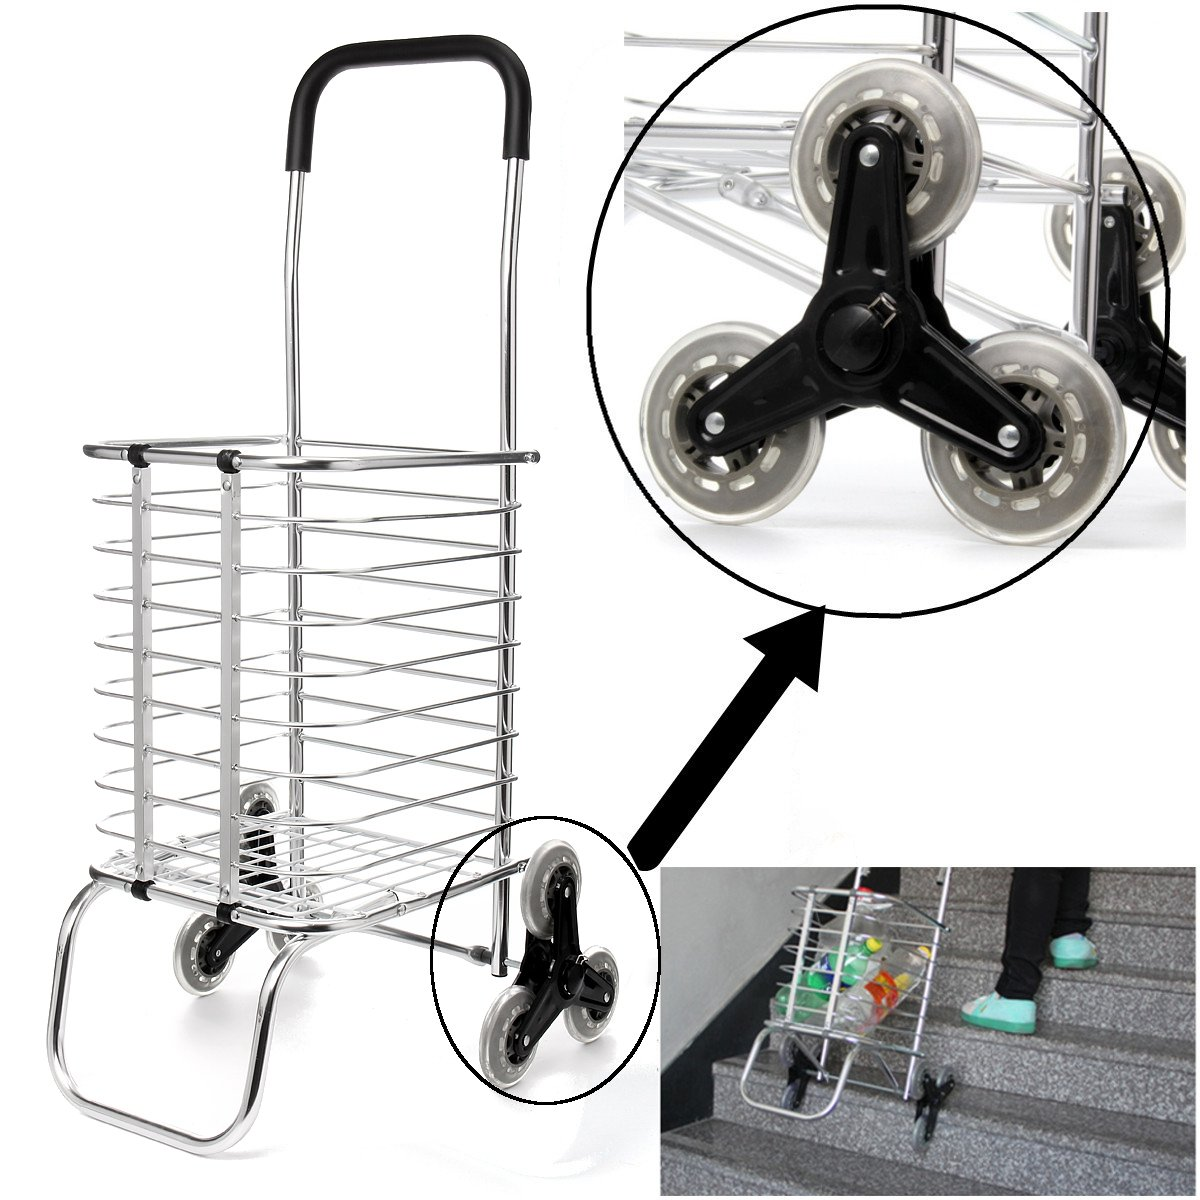 Shopping Carts Trolley Aluminium Foldable Luggage 6 Wheels Folding Basket Bag With Shopping Bag Oxford Upstairs